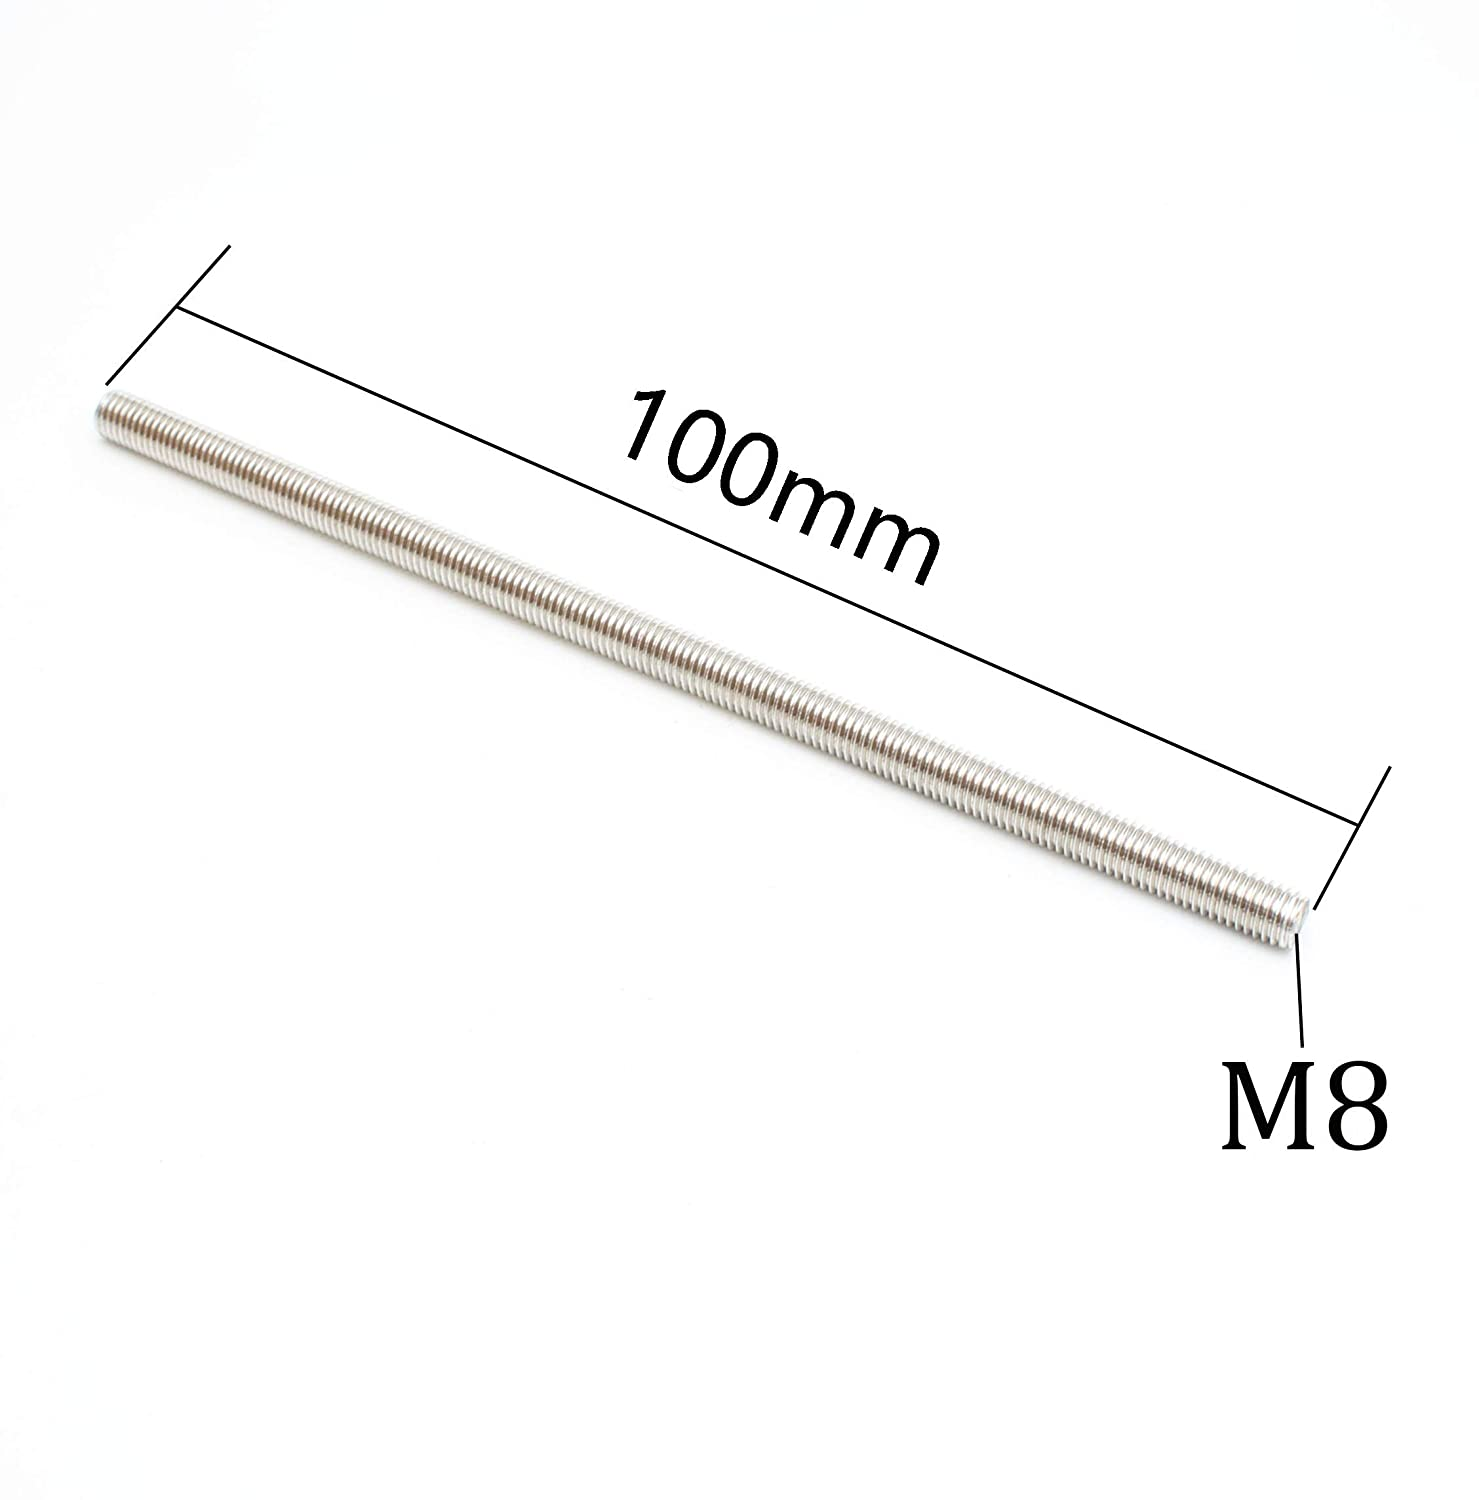 Smartsails M8 x 100mm,304 Stainless Steel Full Threaded Rod 5 Pieces Right Hand Thread